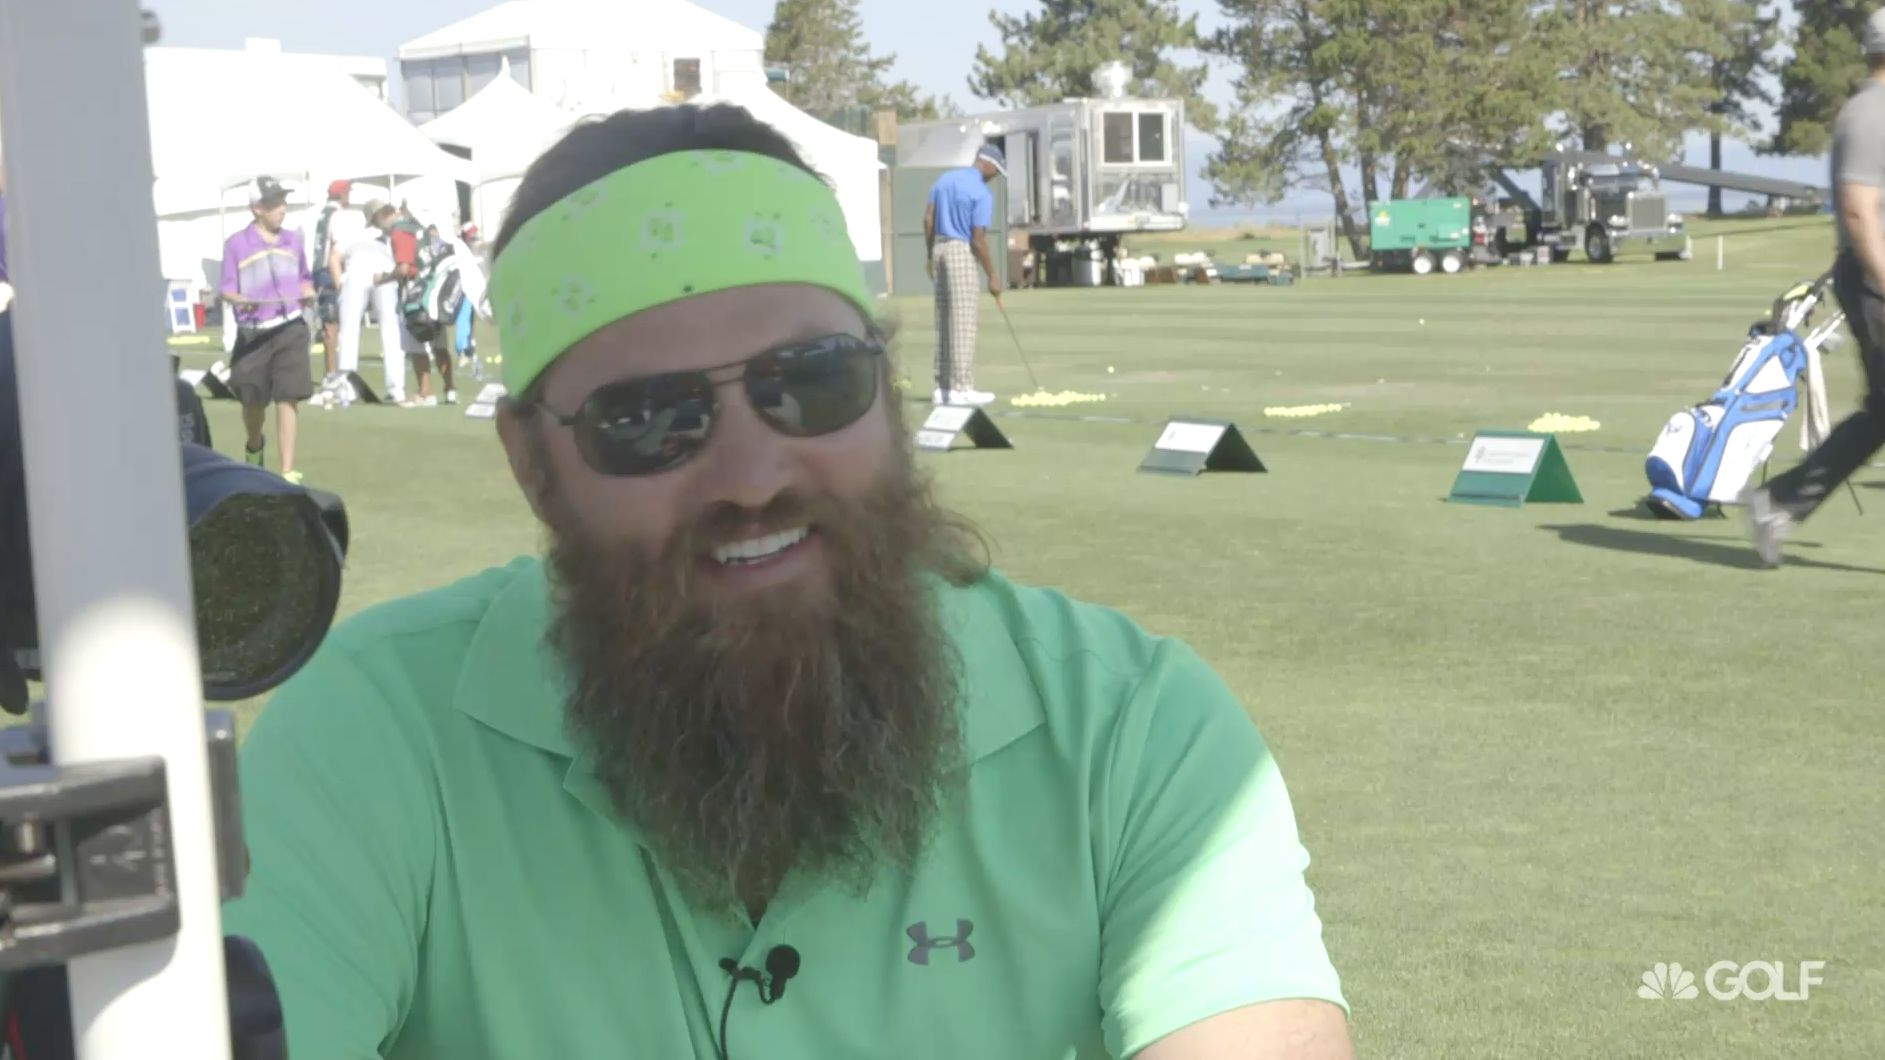 http://golfchannel-a.akamaihd.net/ramp/582/402/acc-lie-detector-willie-robertson.jpg